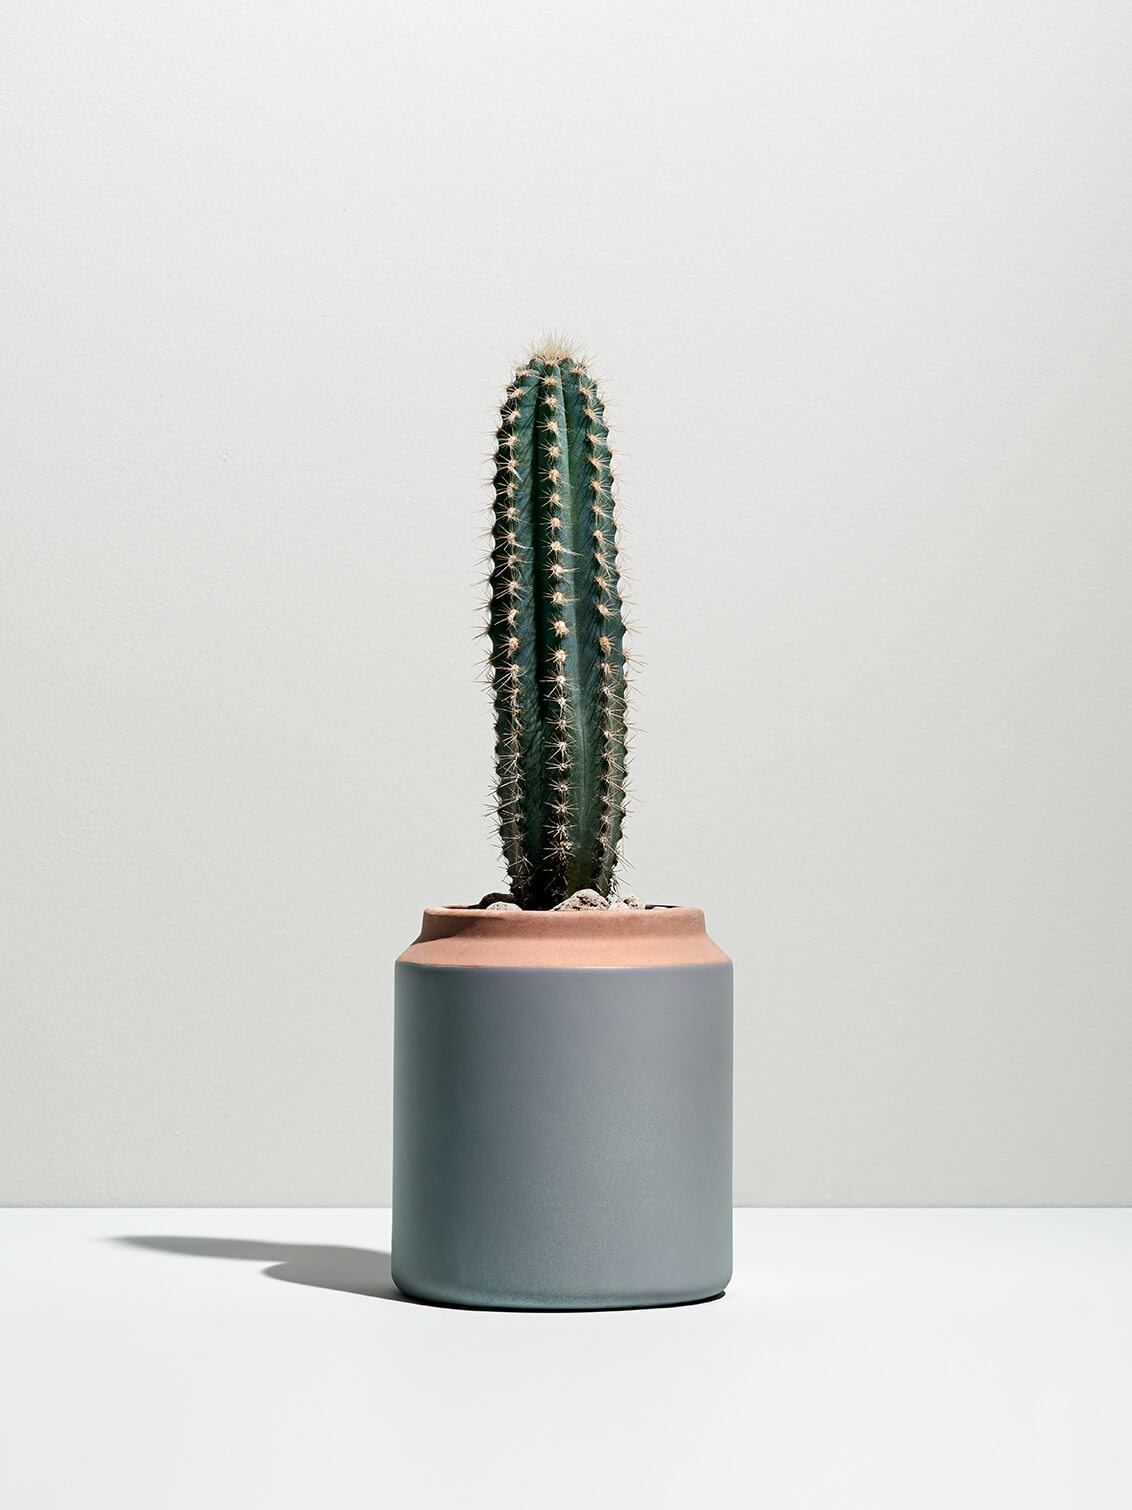 A cactus in a grey flower pot